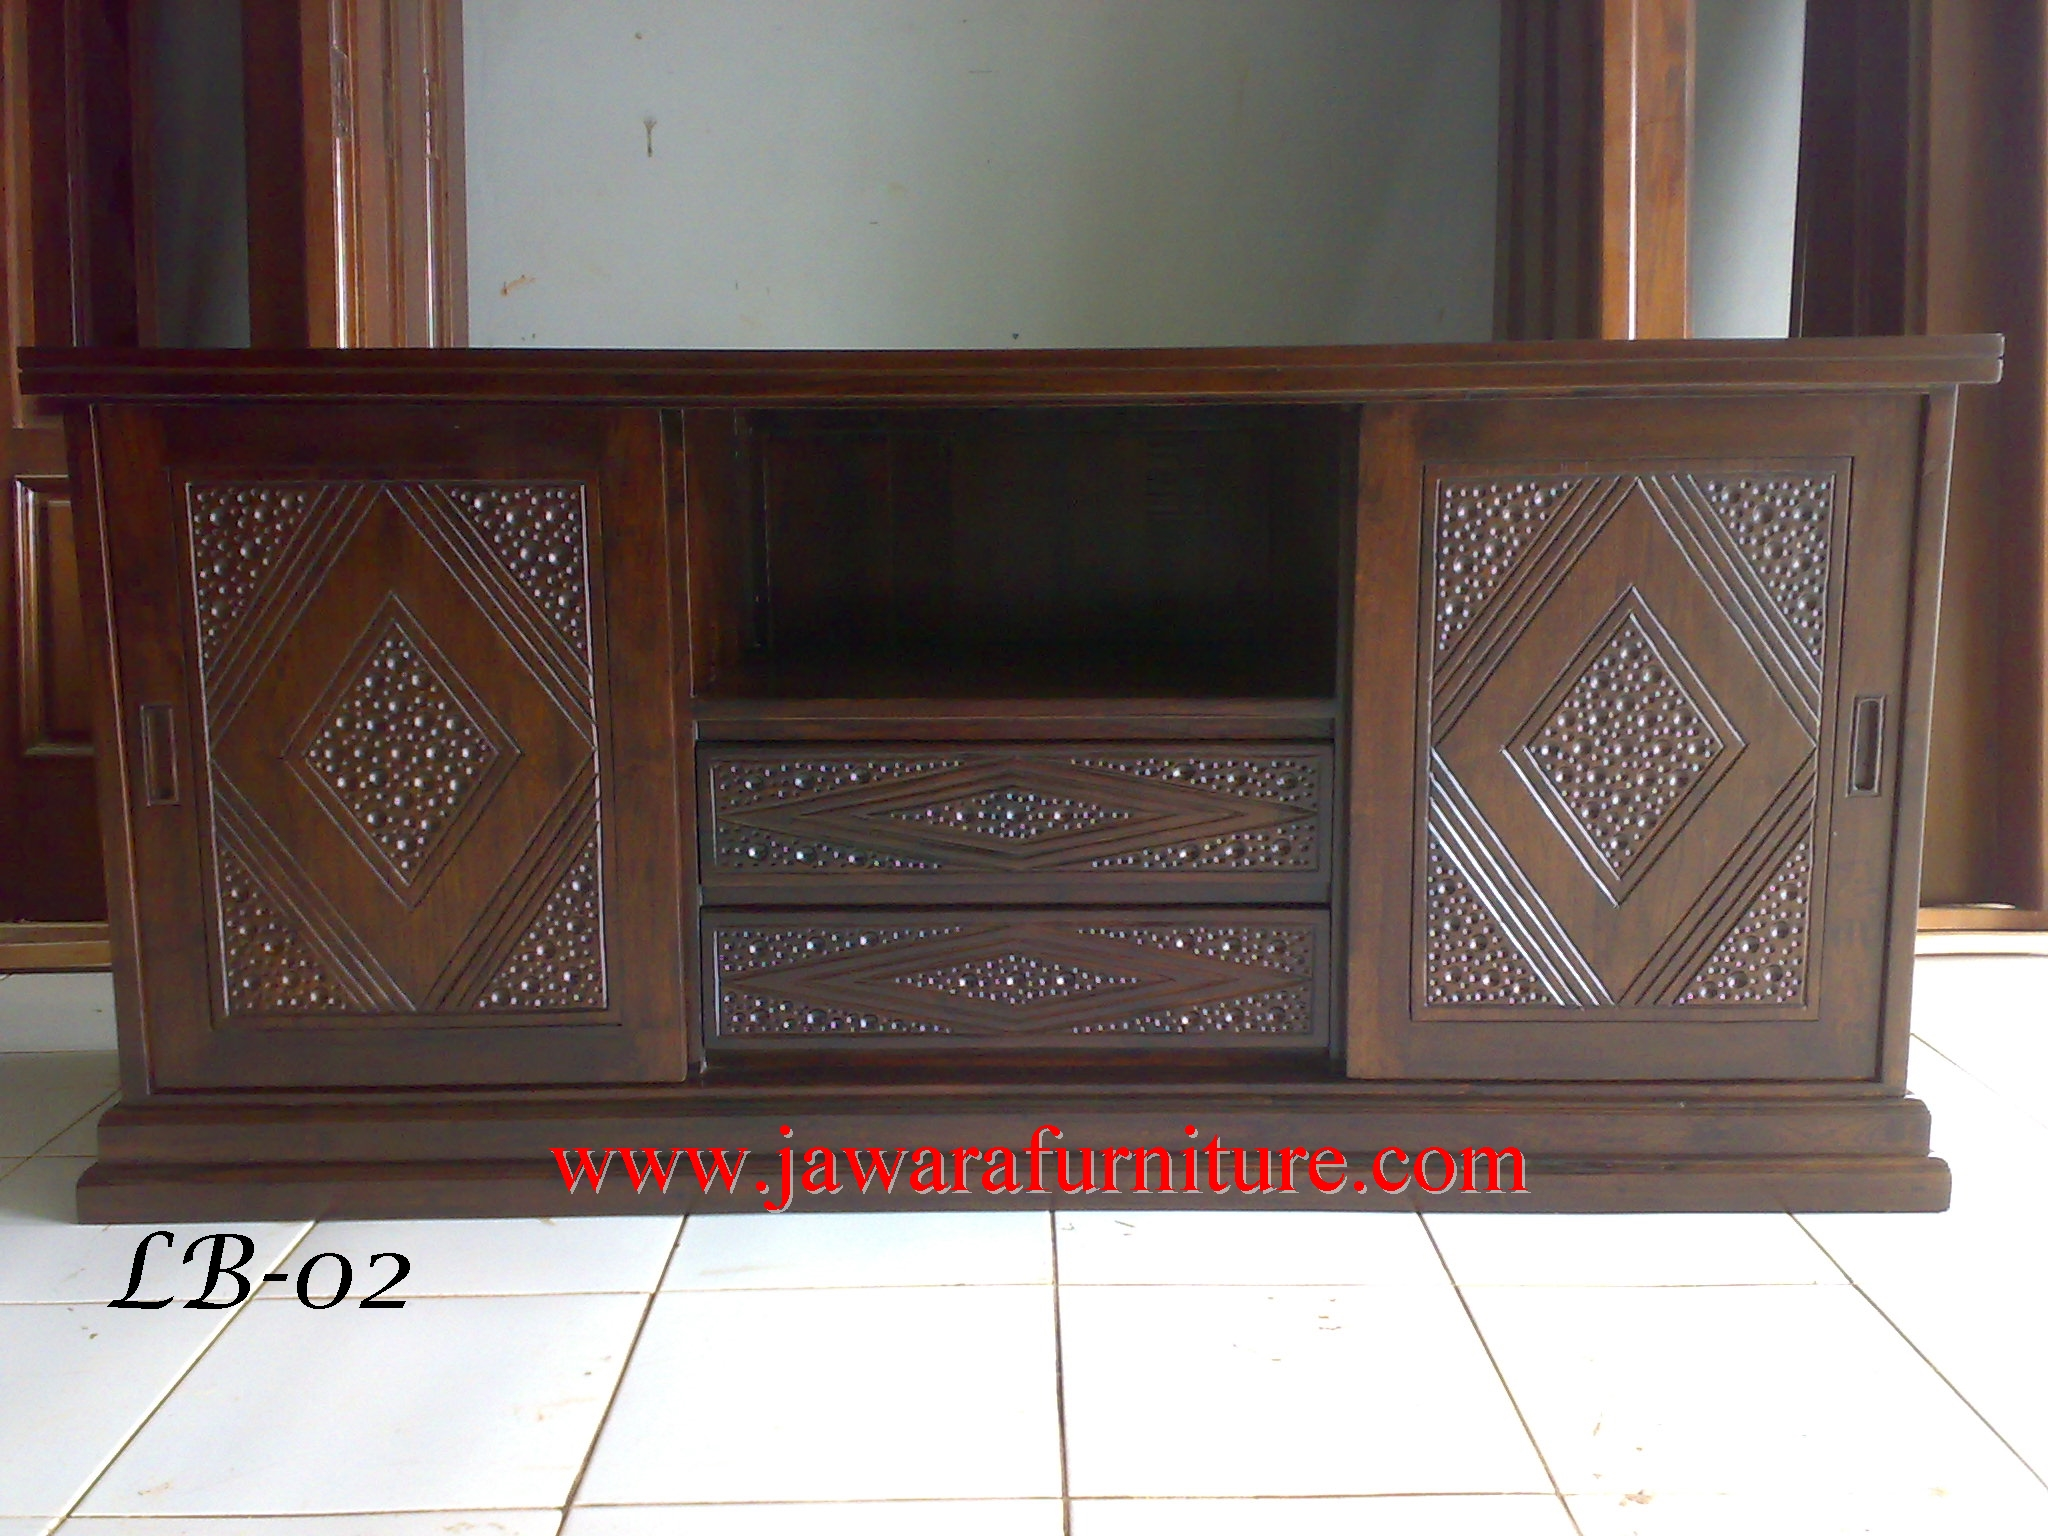 Bufet Jati Minimalis Ruang Tamu Jawara Furniture # Meuble Tv Luna